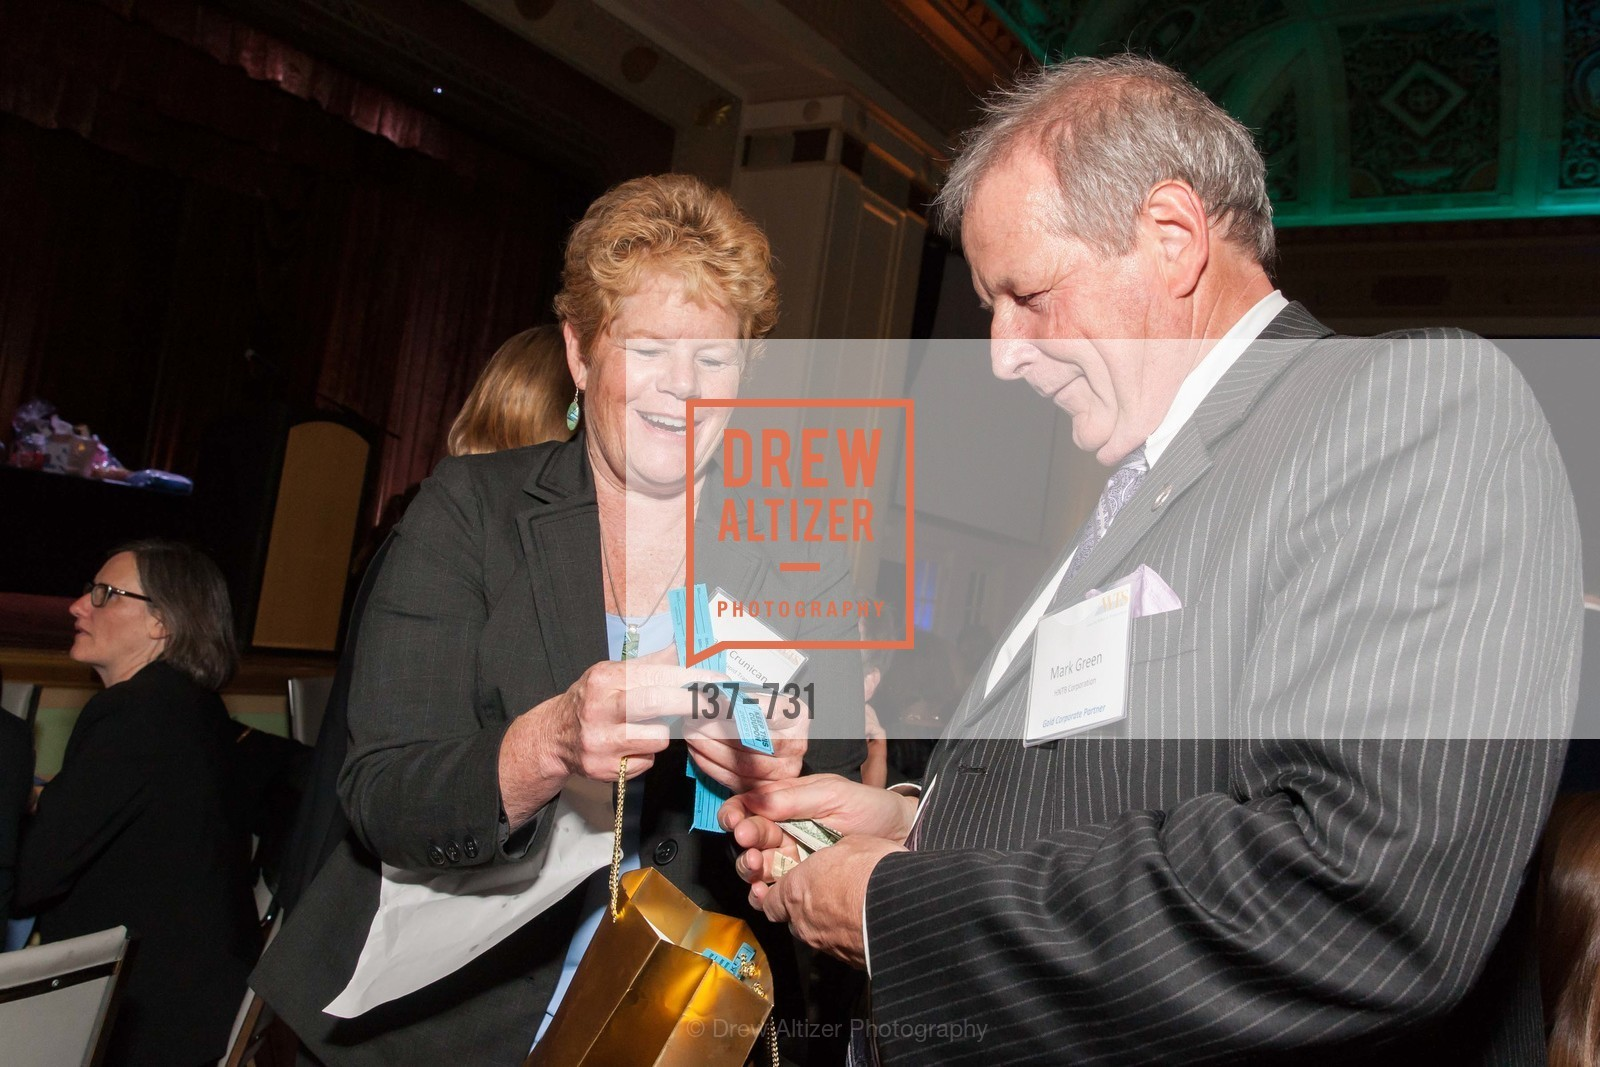 Grace Crunican, Mark Green, WOMEN'S TRANSPORTATION SEMINAR SF Bay Area Chapter Annual Scholarship Awards, US, May 14th, 2015,Drew Altizer, Drew Altizer Photography, full-service agency, private events, San Francisco photographer, photographer california